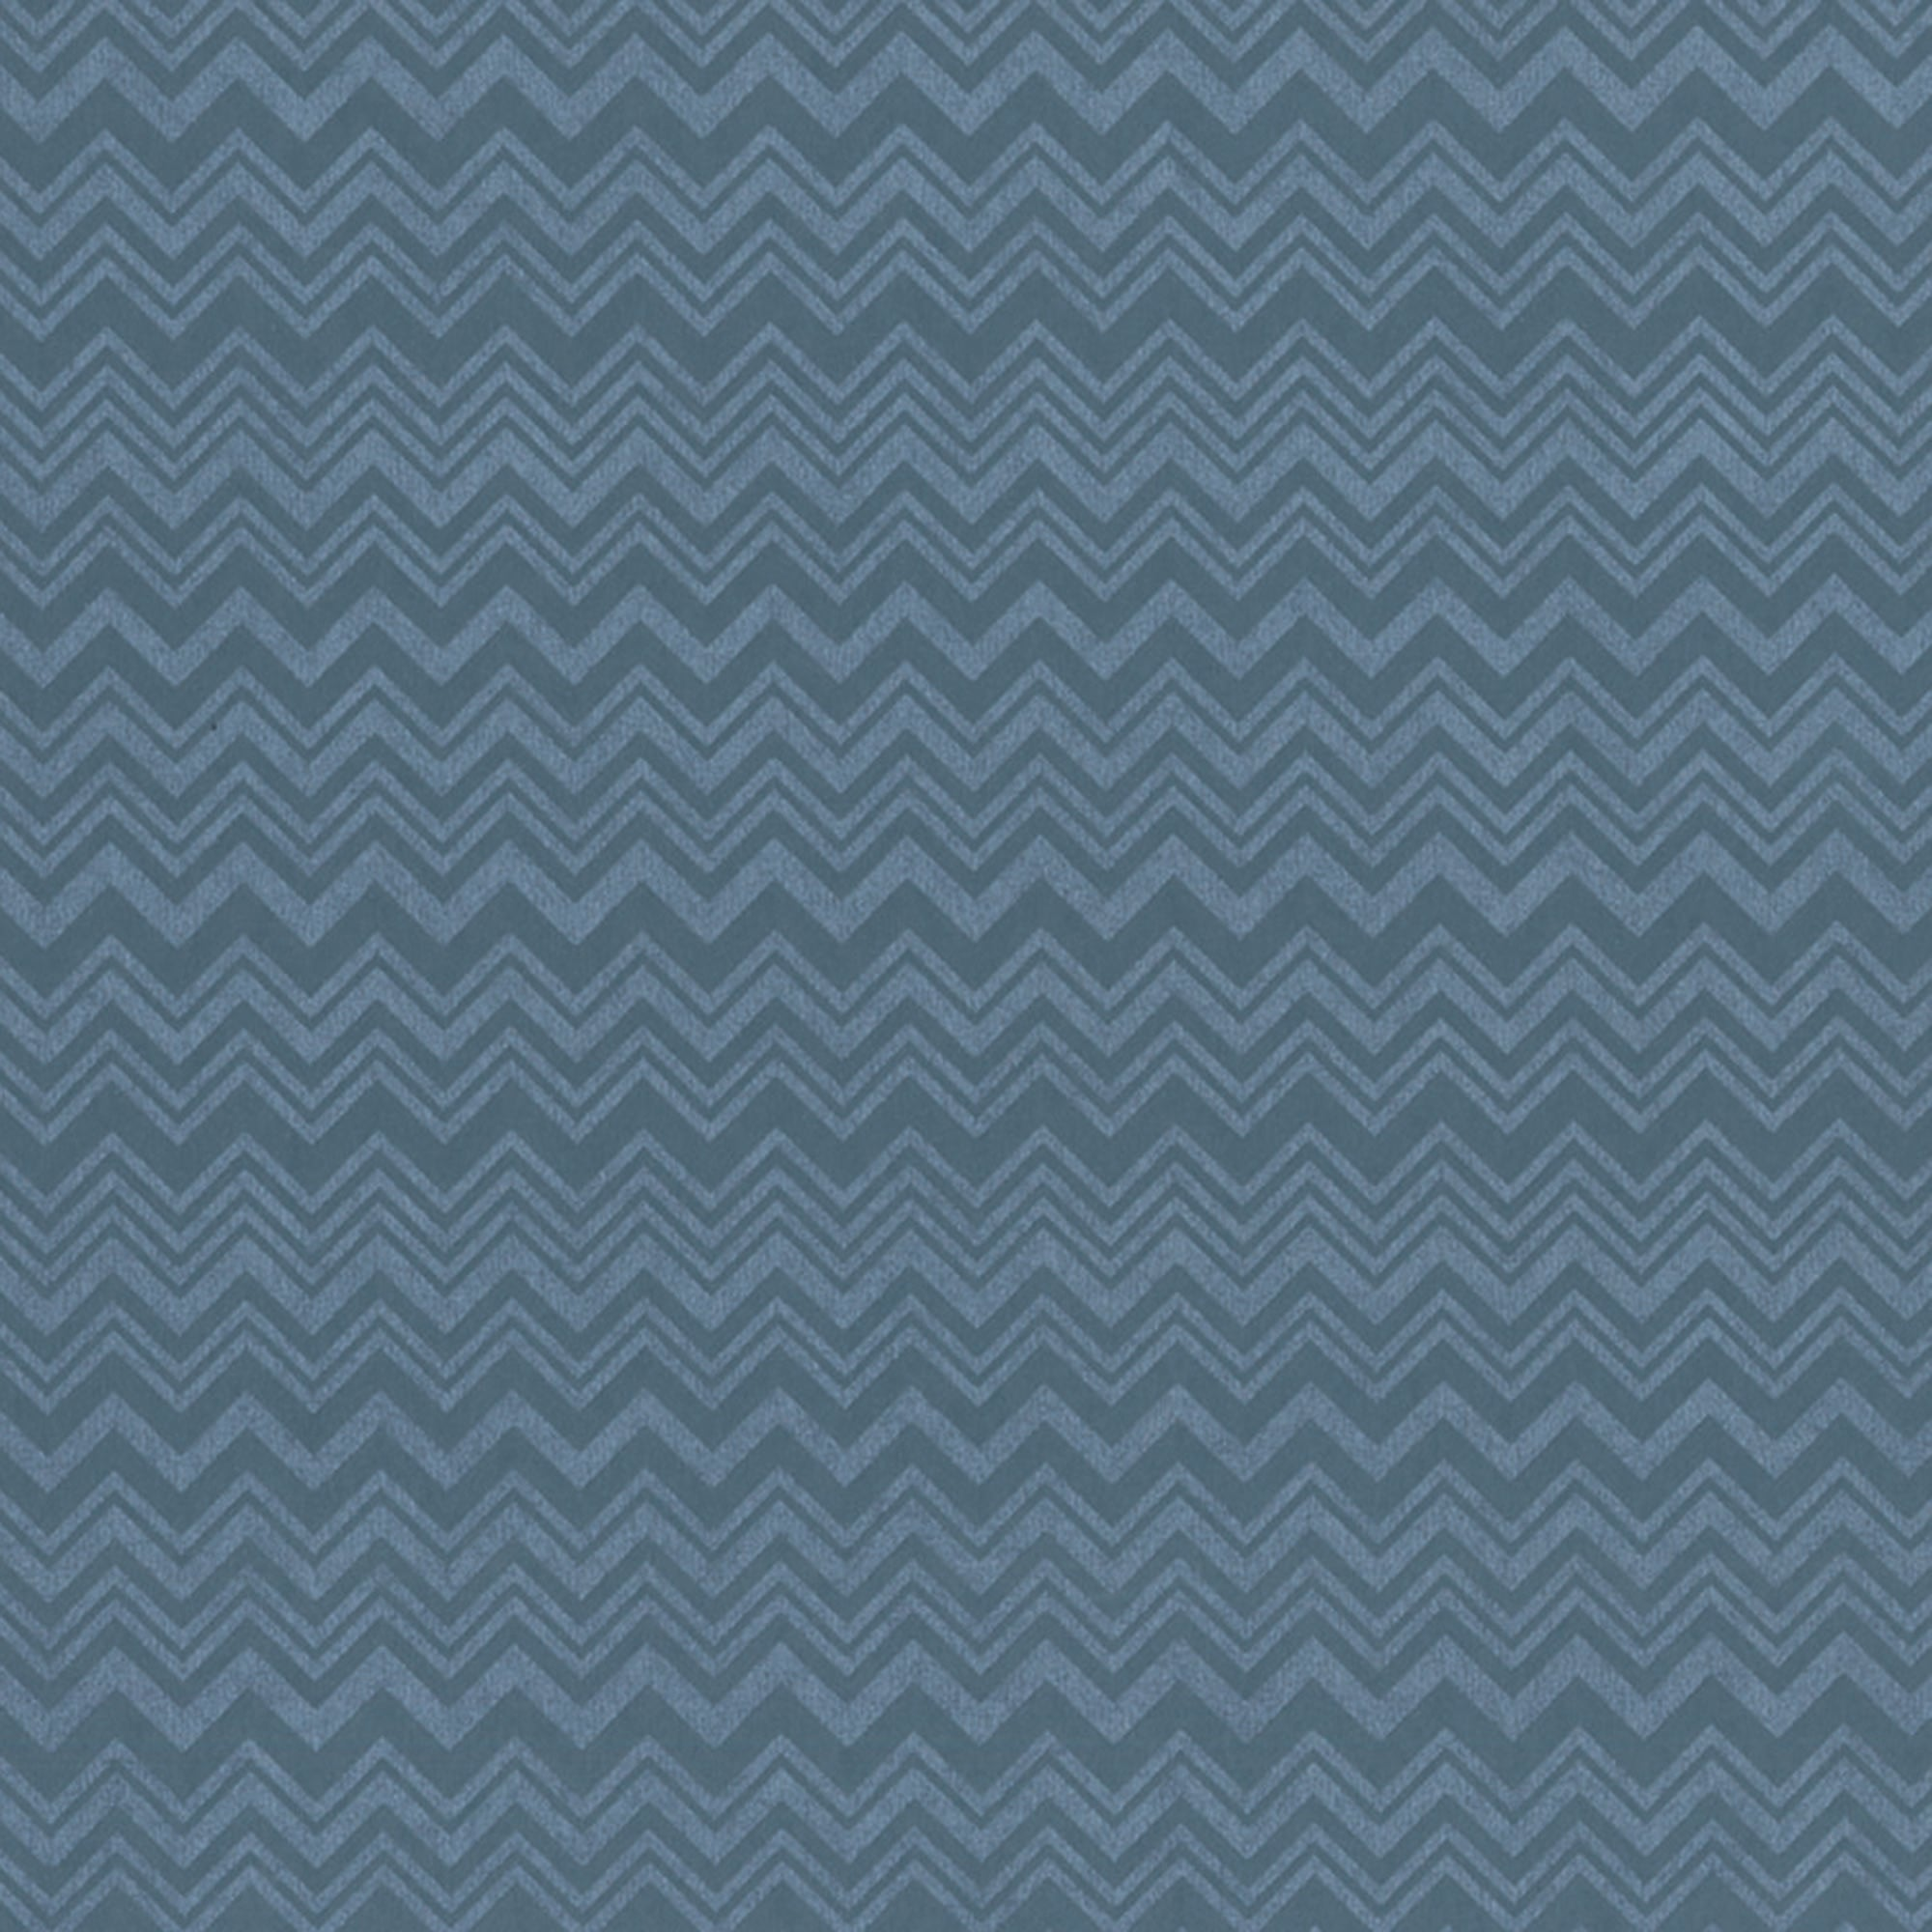 Steel-Blue And Silver-Blue, Multi-Width Chevron. 10122, Zig Zag